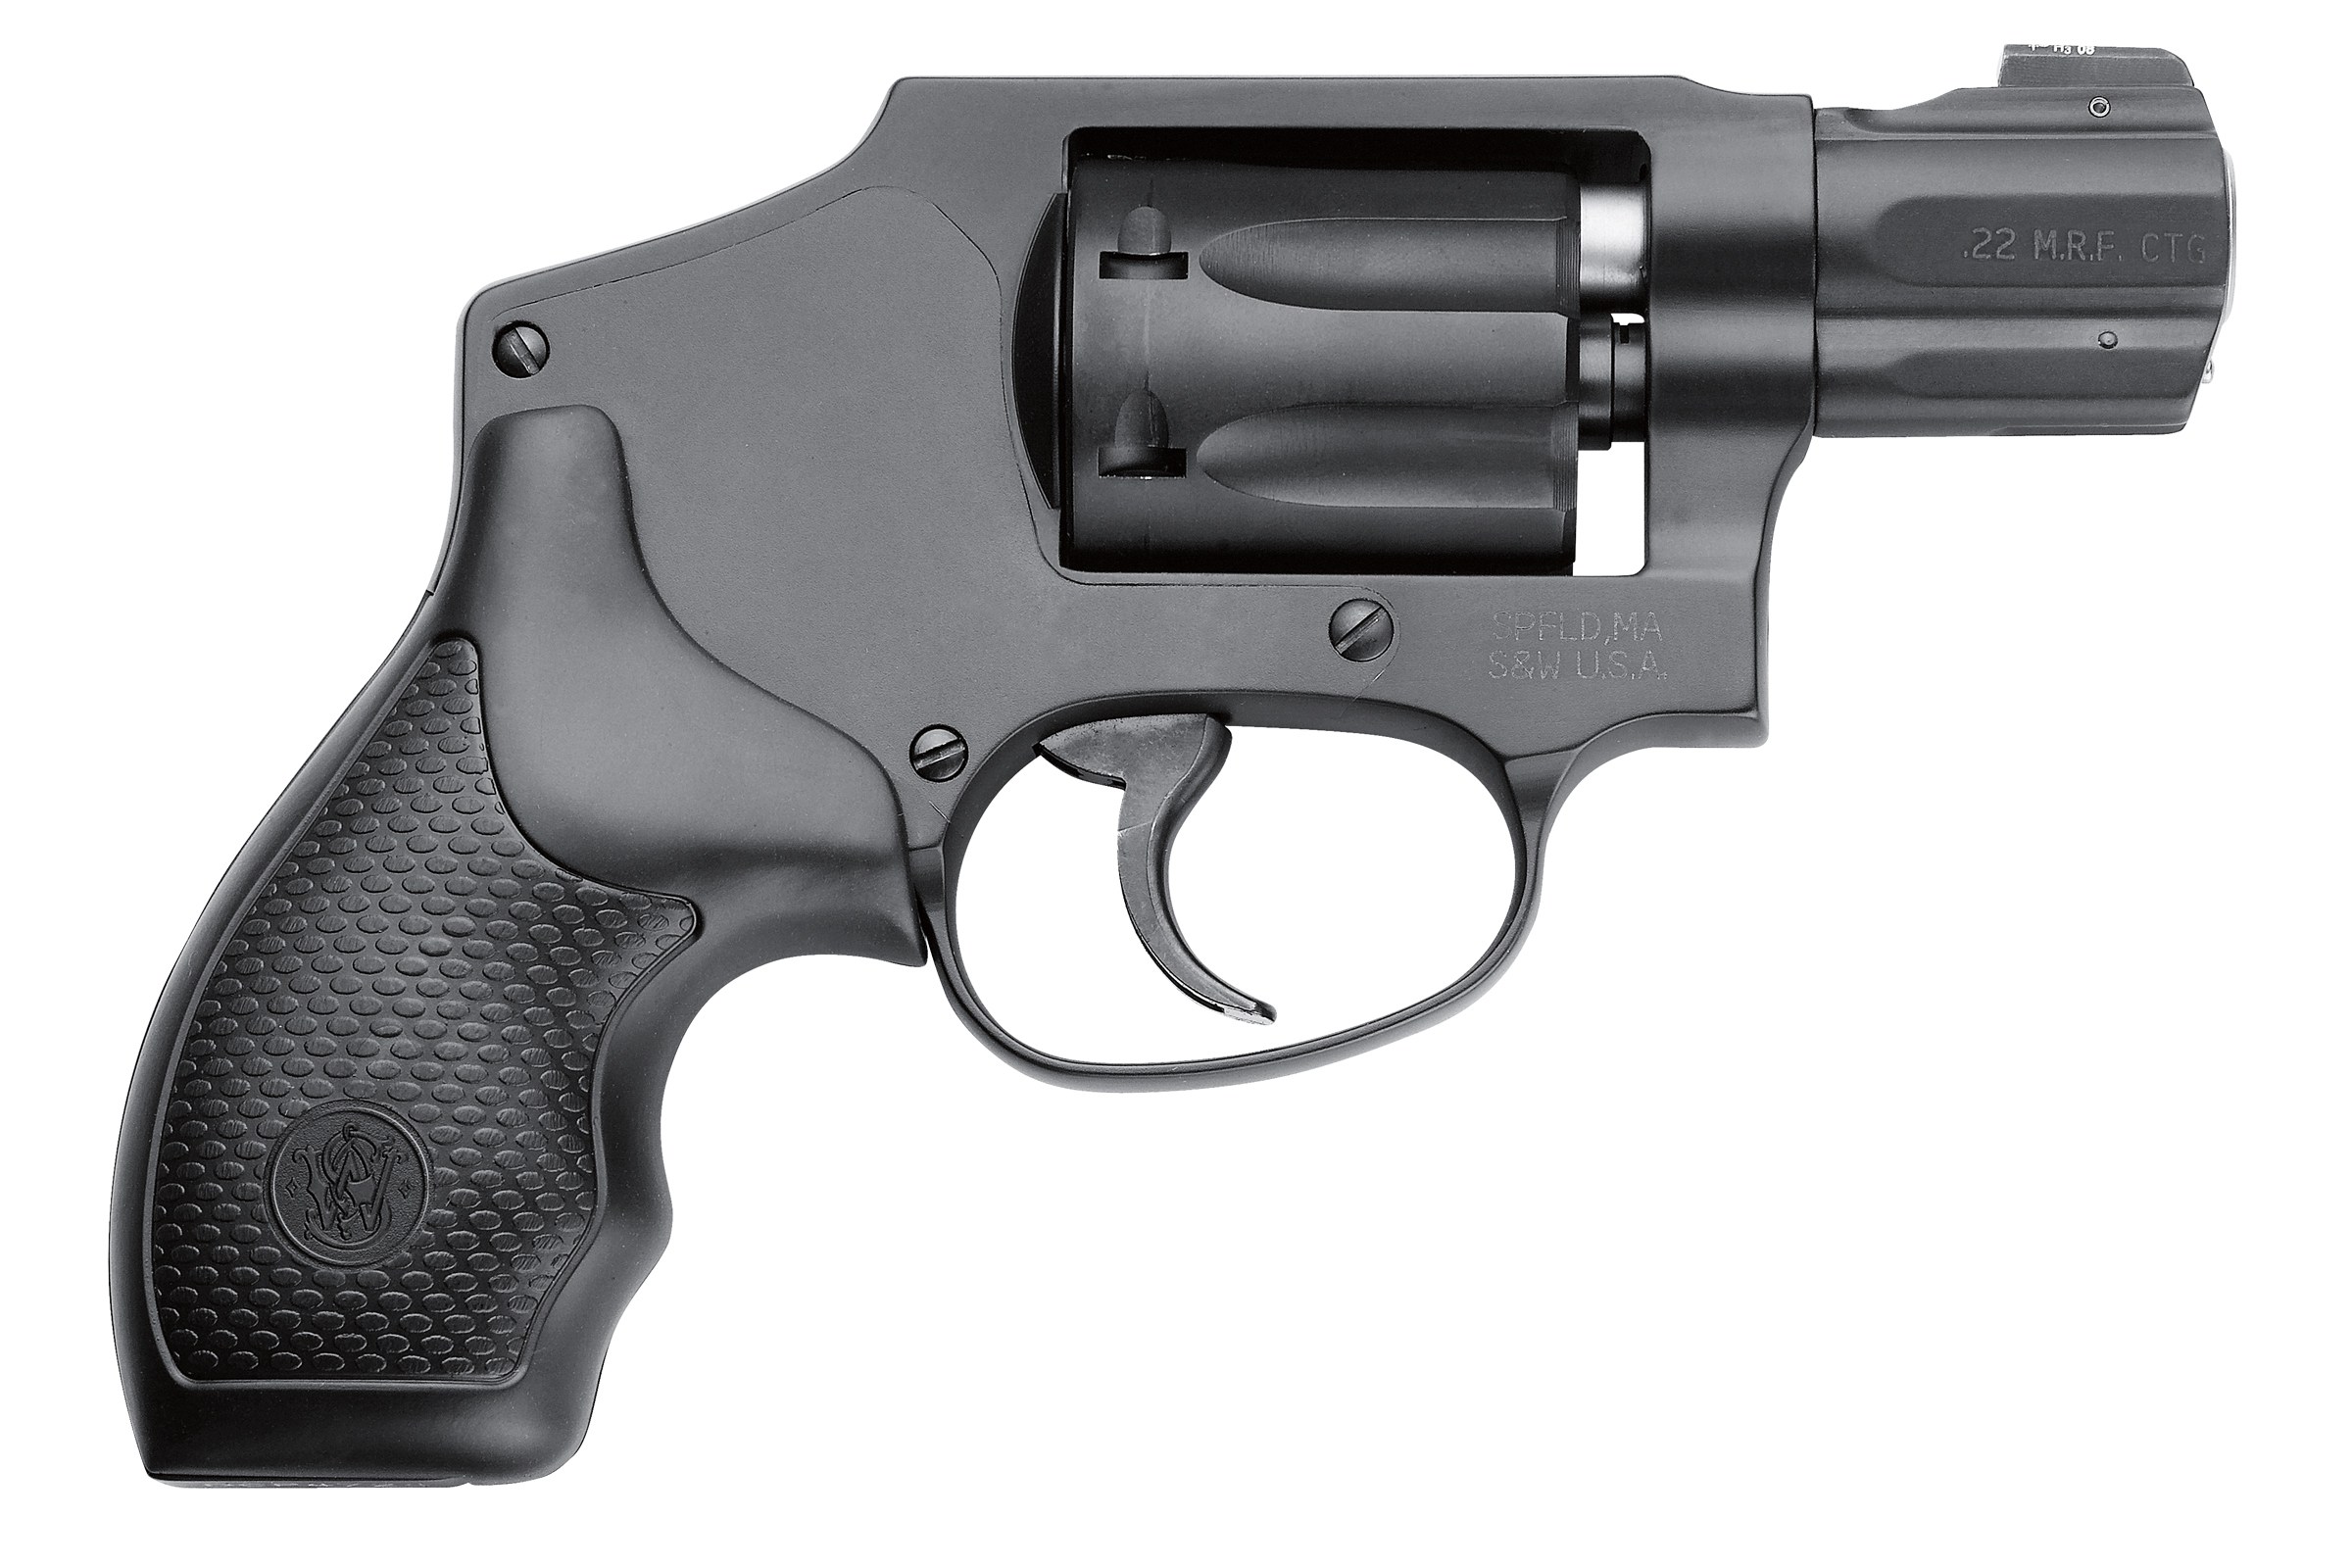 Smith and Wesson 351C 22 Magnum